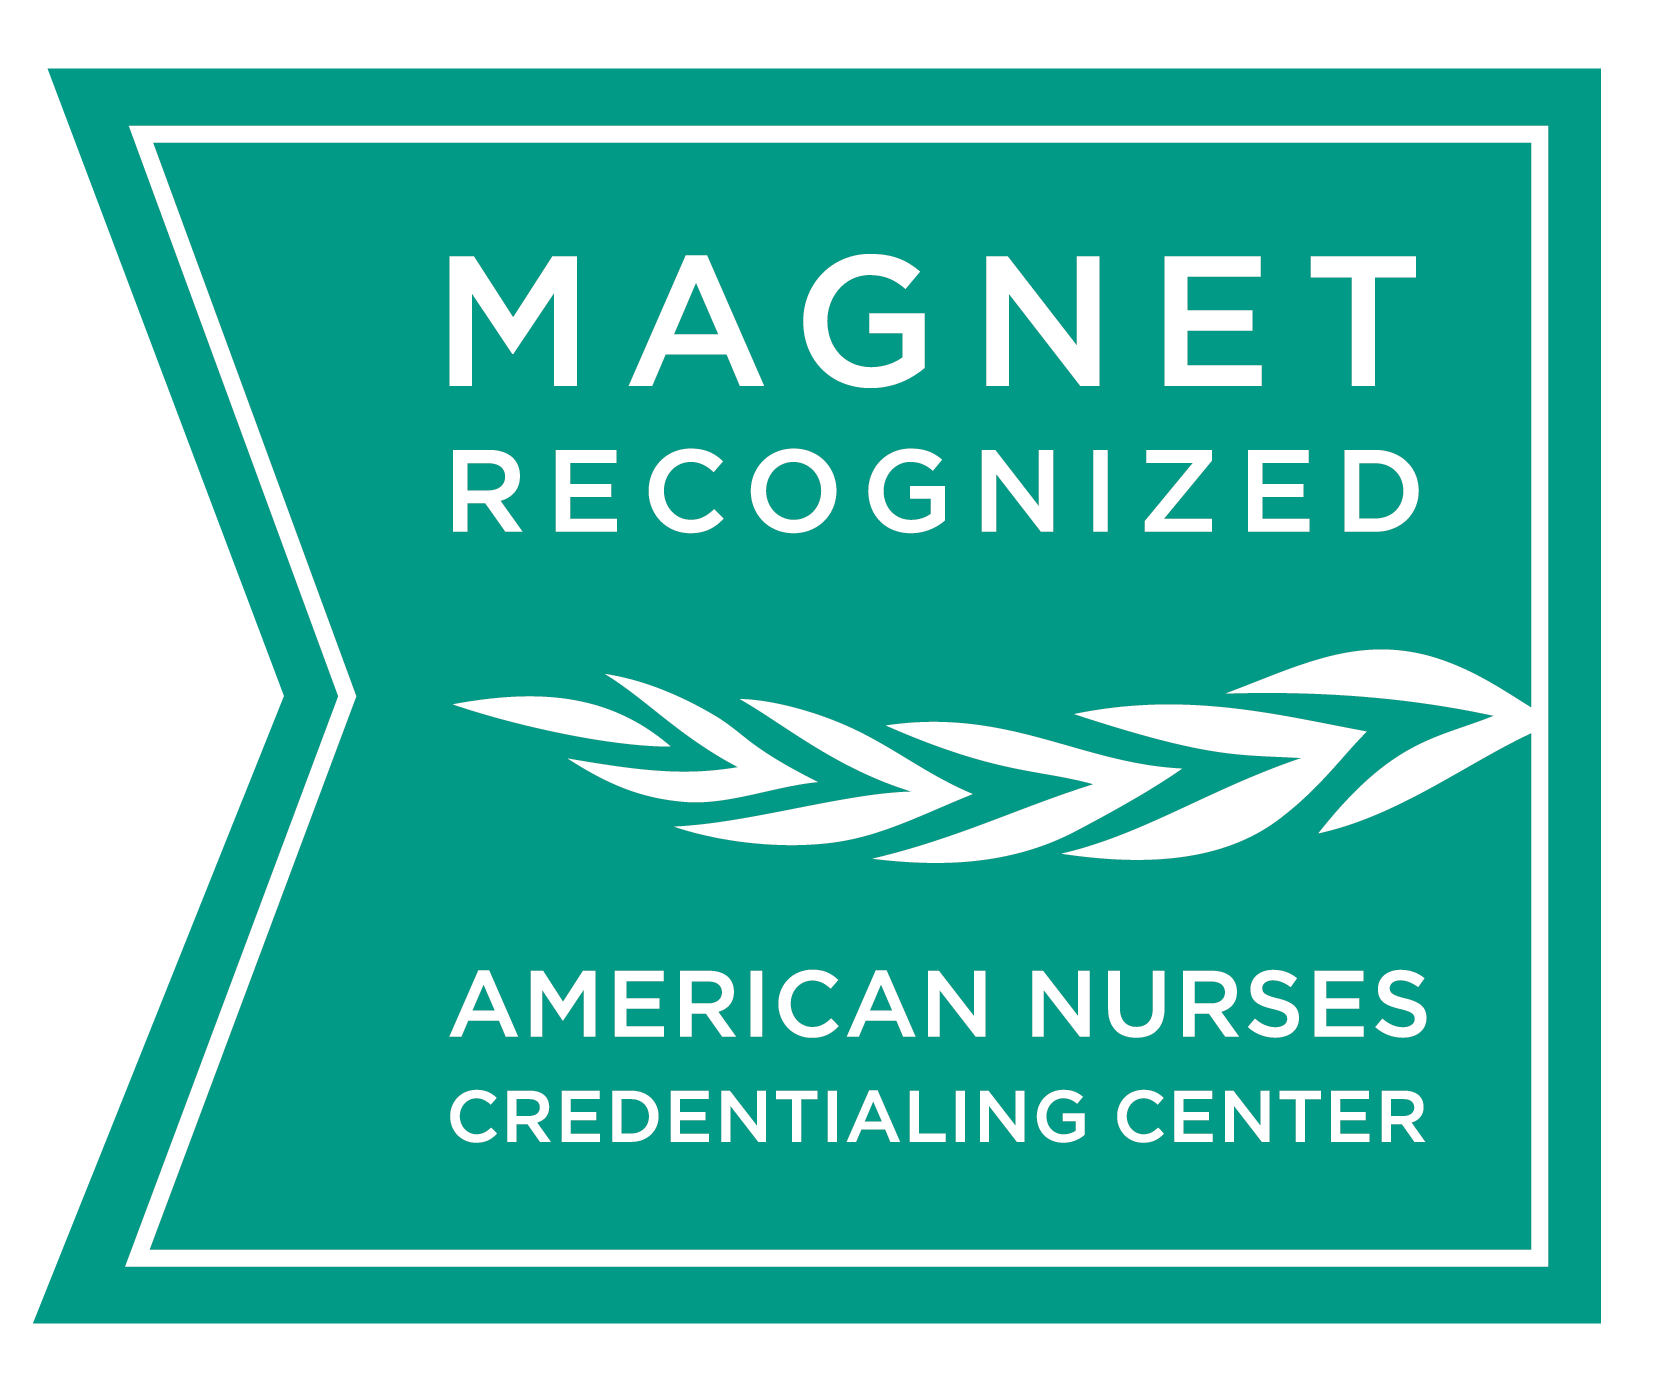 Magnet Recognized logo from the American Nurses Credentialing Center